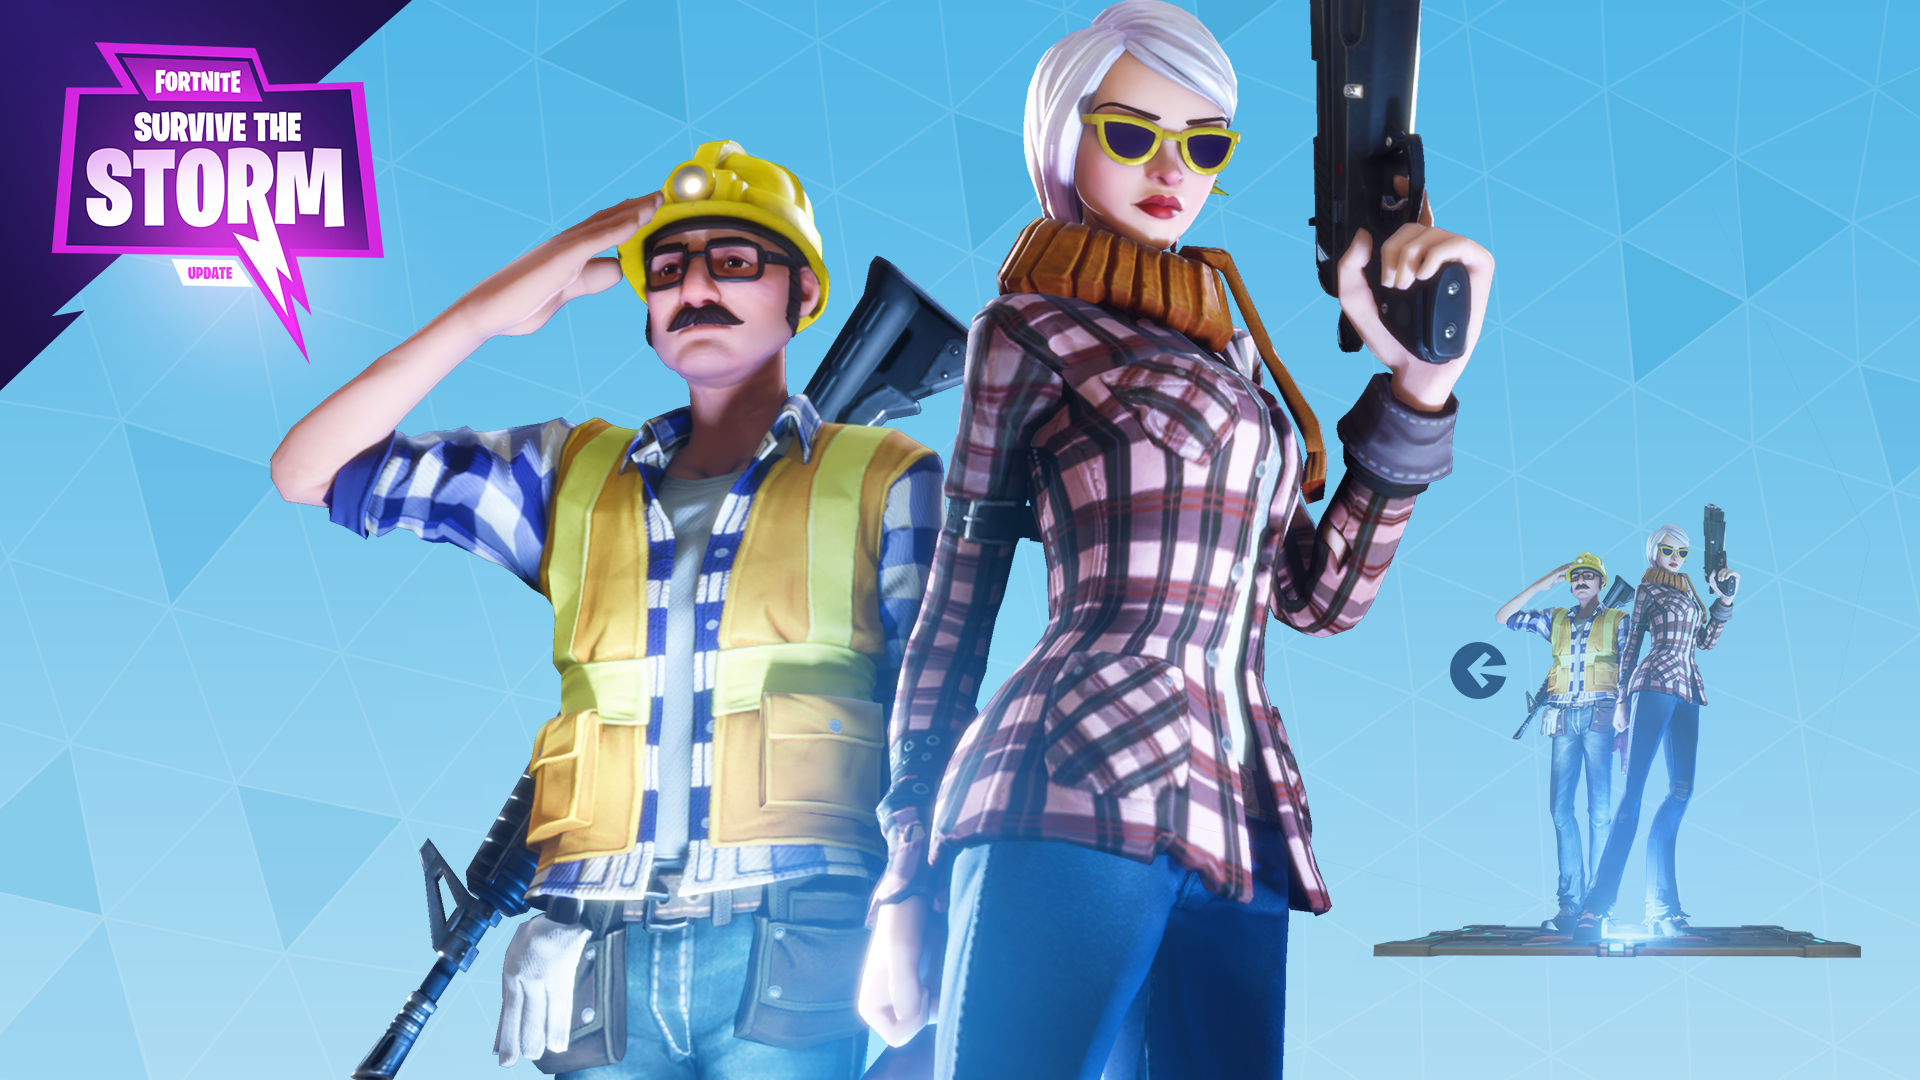 Fortnite%2Fblog%2Fsurvive-the-storm---release-notes%2FENG_Defenders-1920x1080-3c9fed8067c3be3a07d459416d4d6467551dee5e